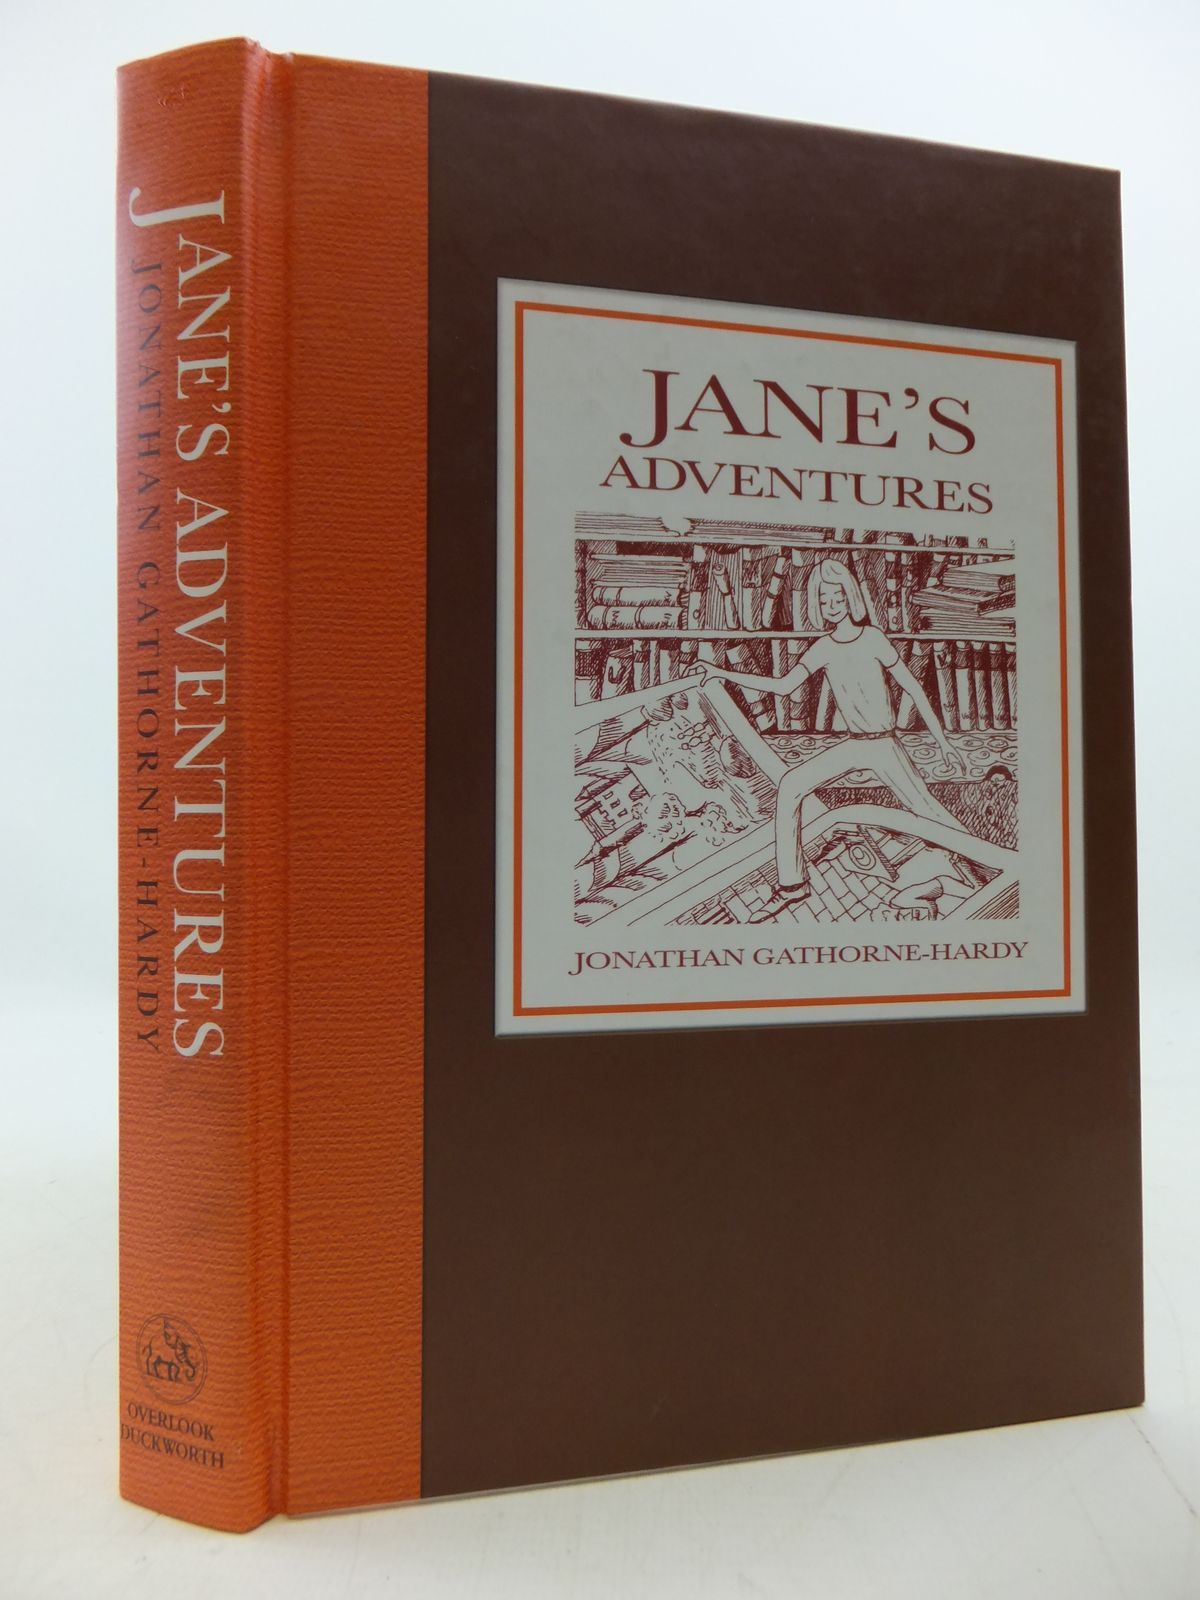 Photo of JANE'S ADVENTURES written by Gathorne-Hardy, Jonathan illustrated by Hill, Nicolas published by Overlook Duckworth (STOCK CODE: 1808441)  for sale by Stella & Rose's Books